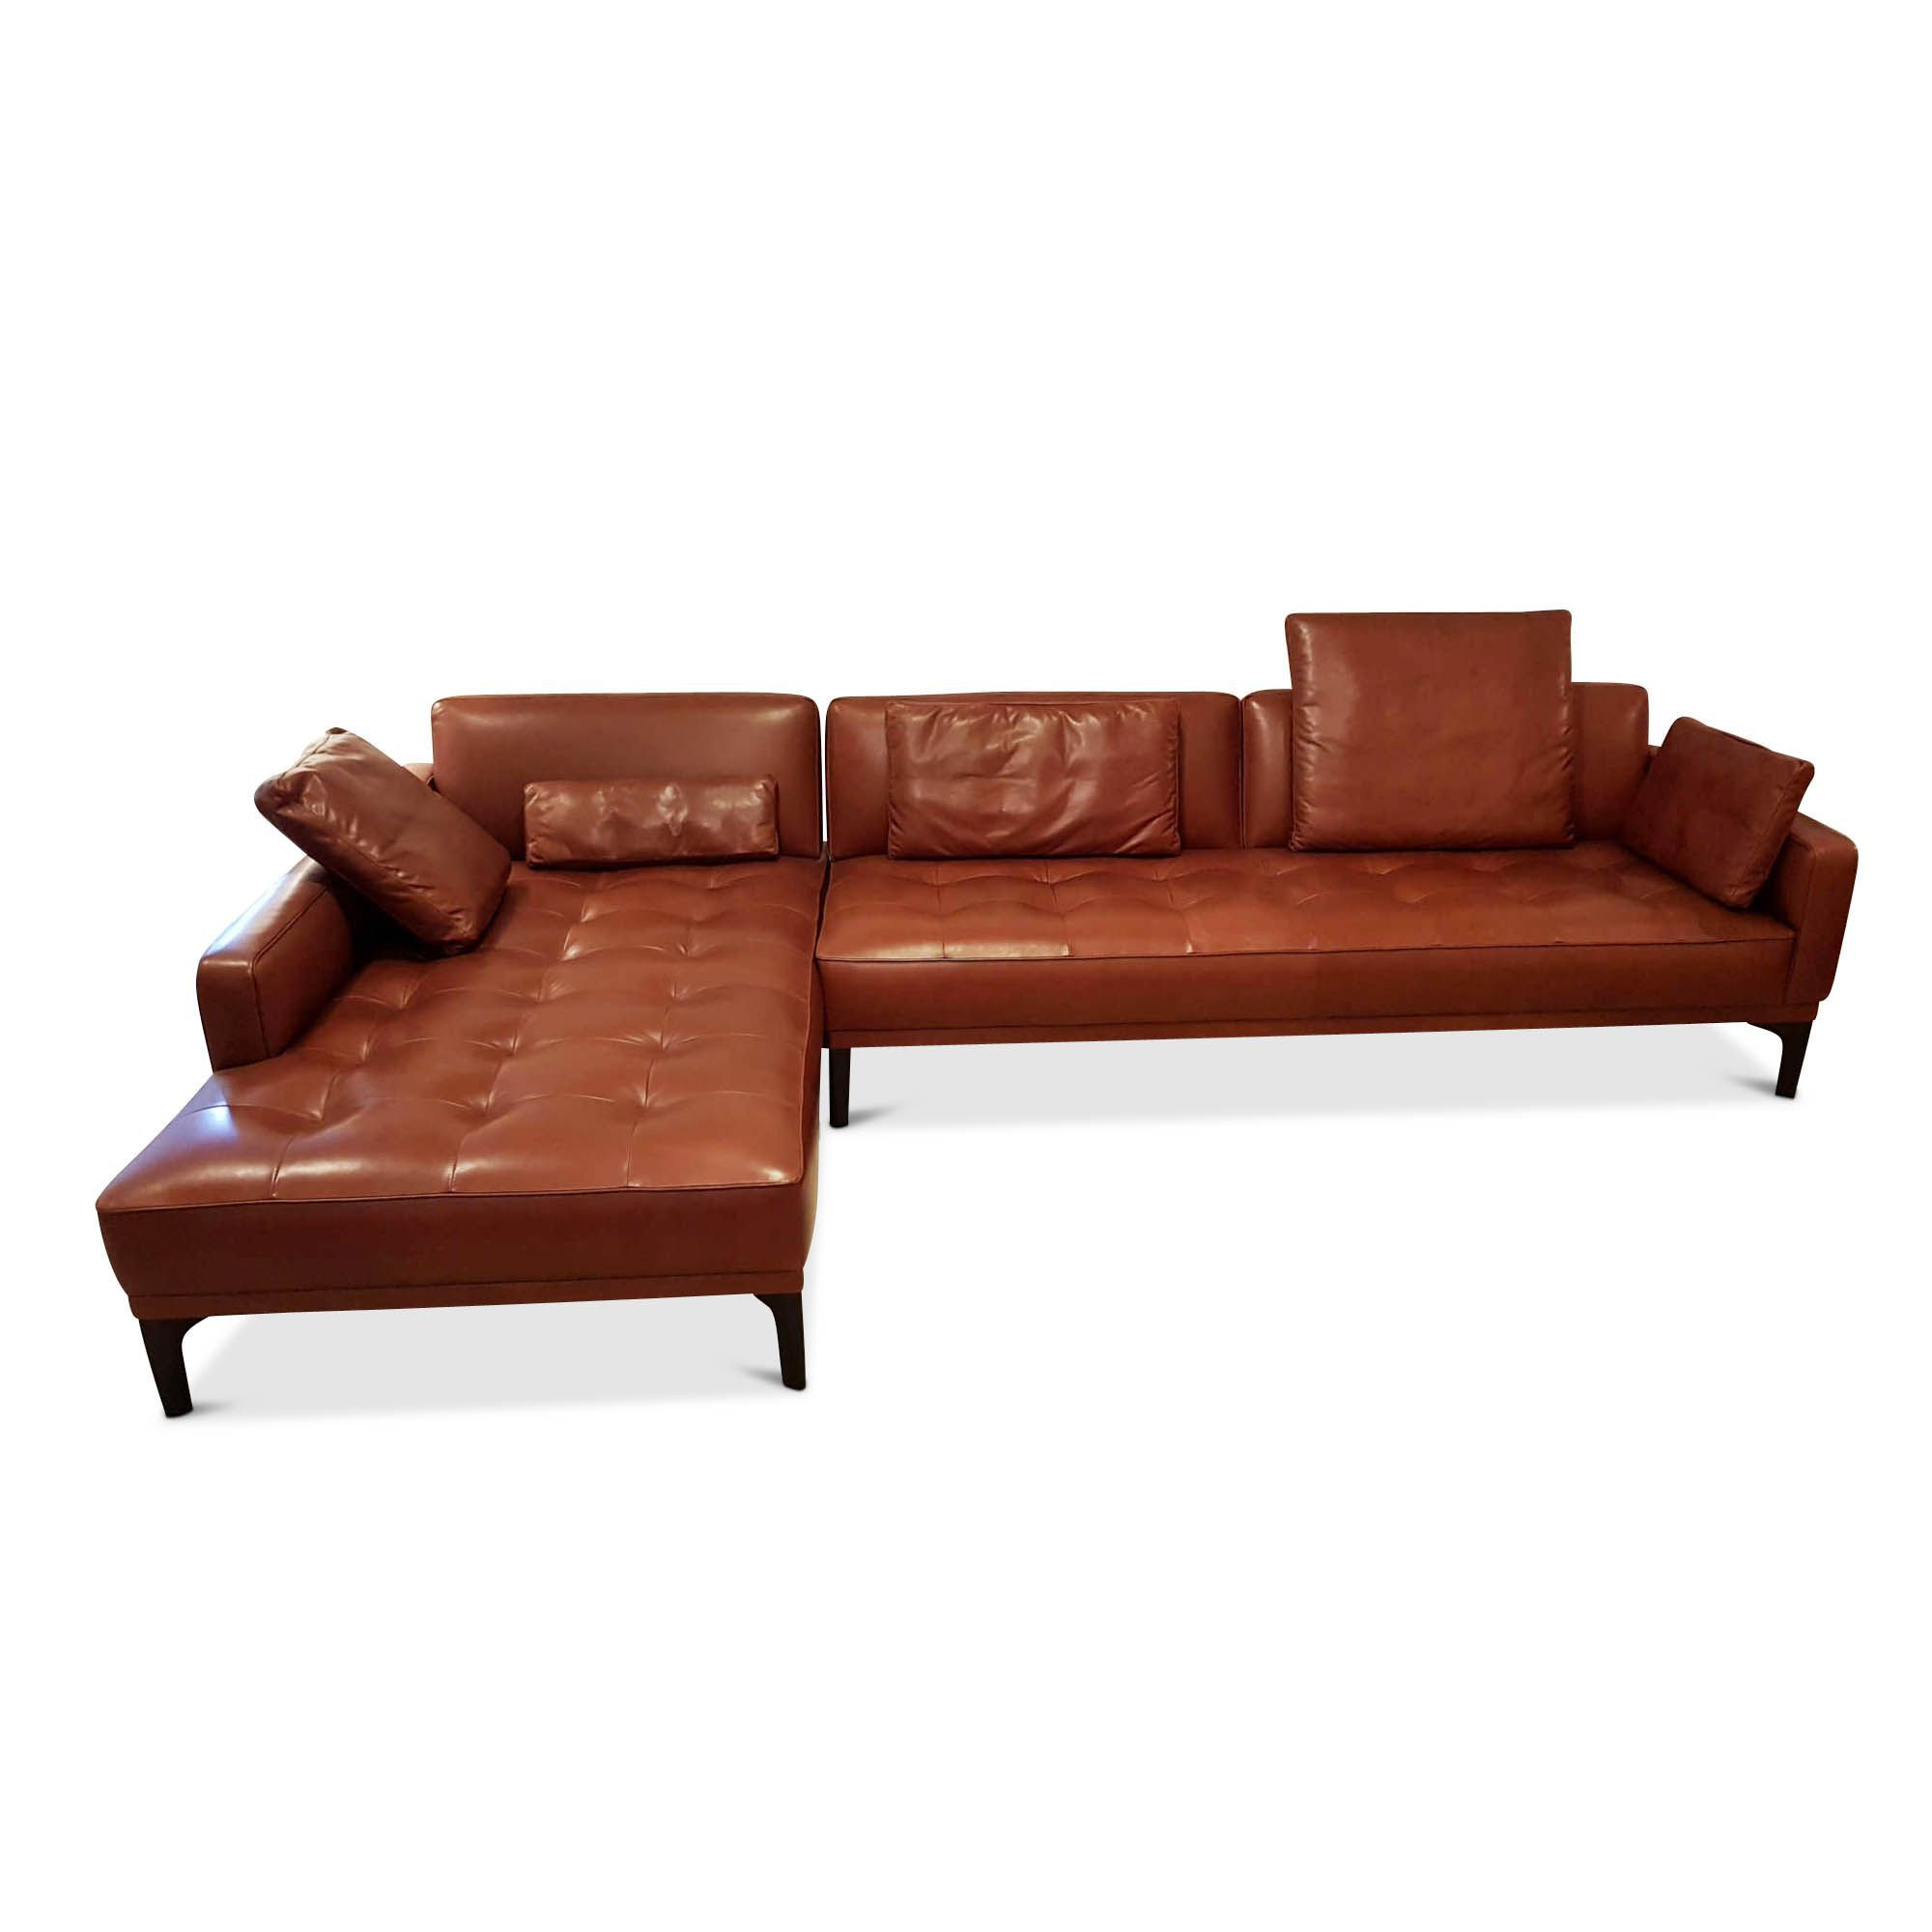 Komplex Sofa Ohne Lehne Couch Home Sectional Couch